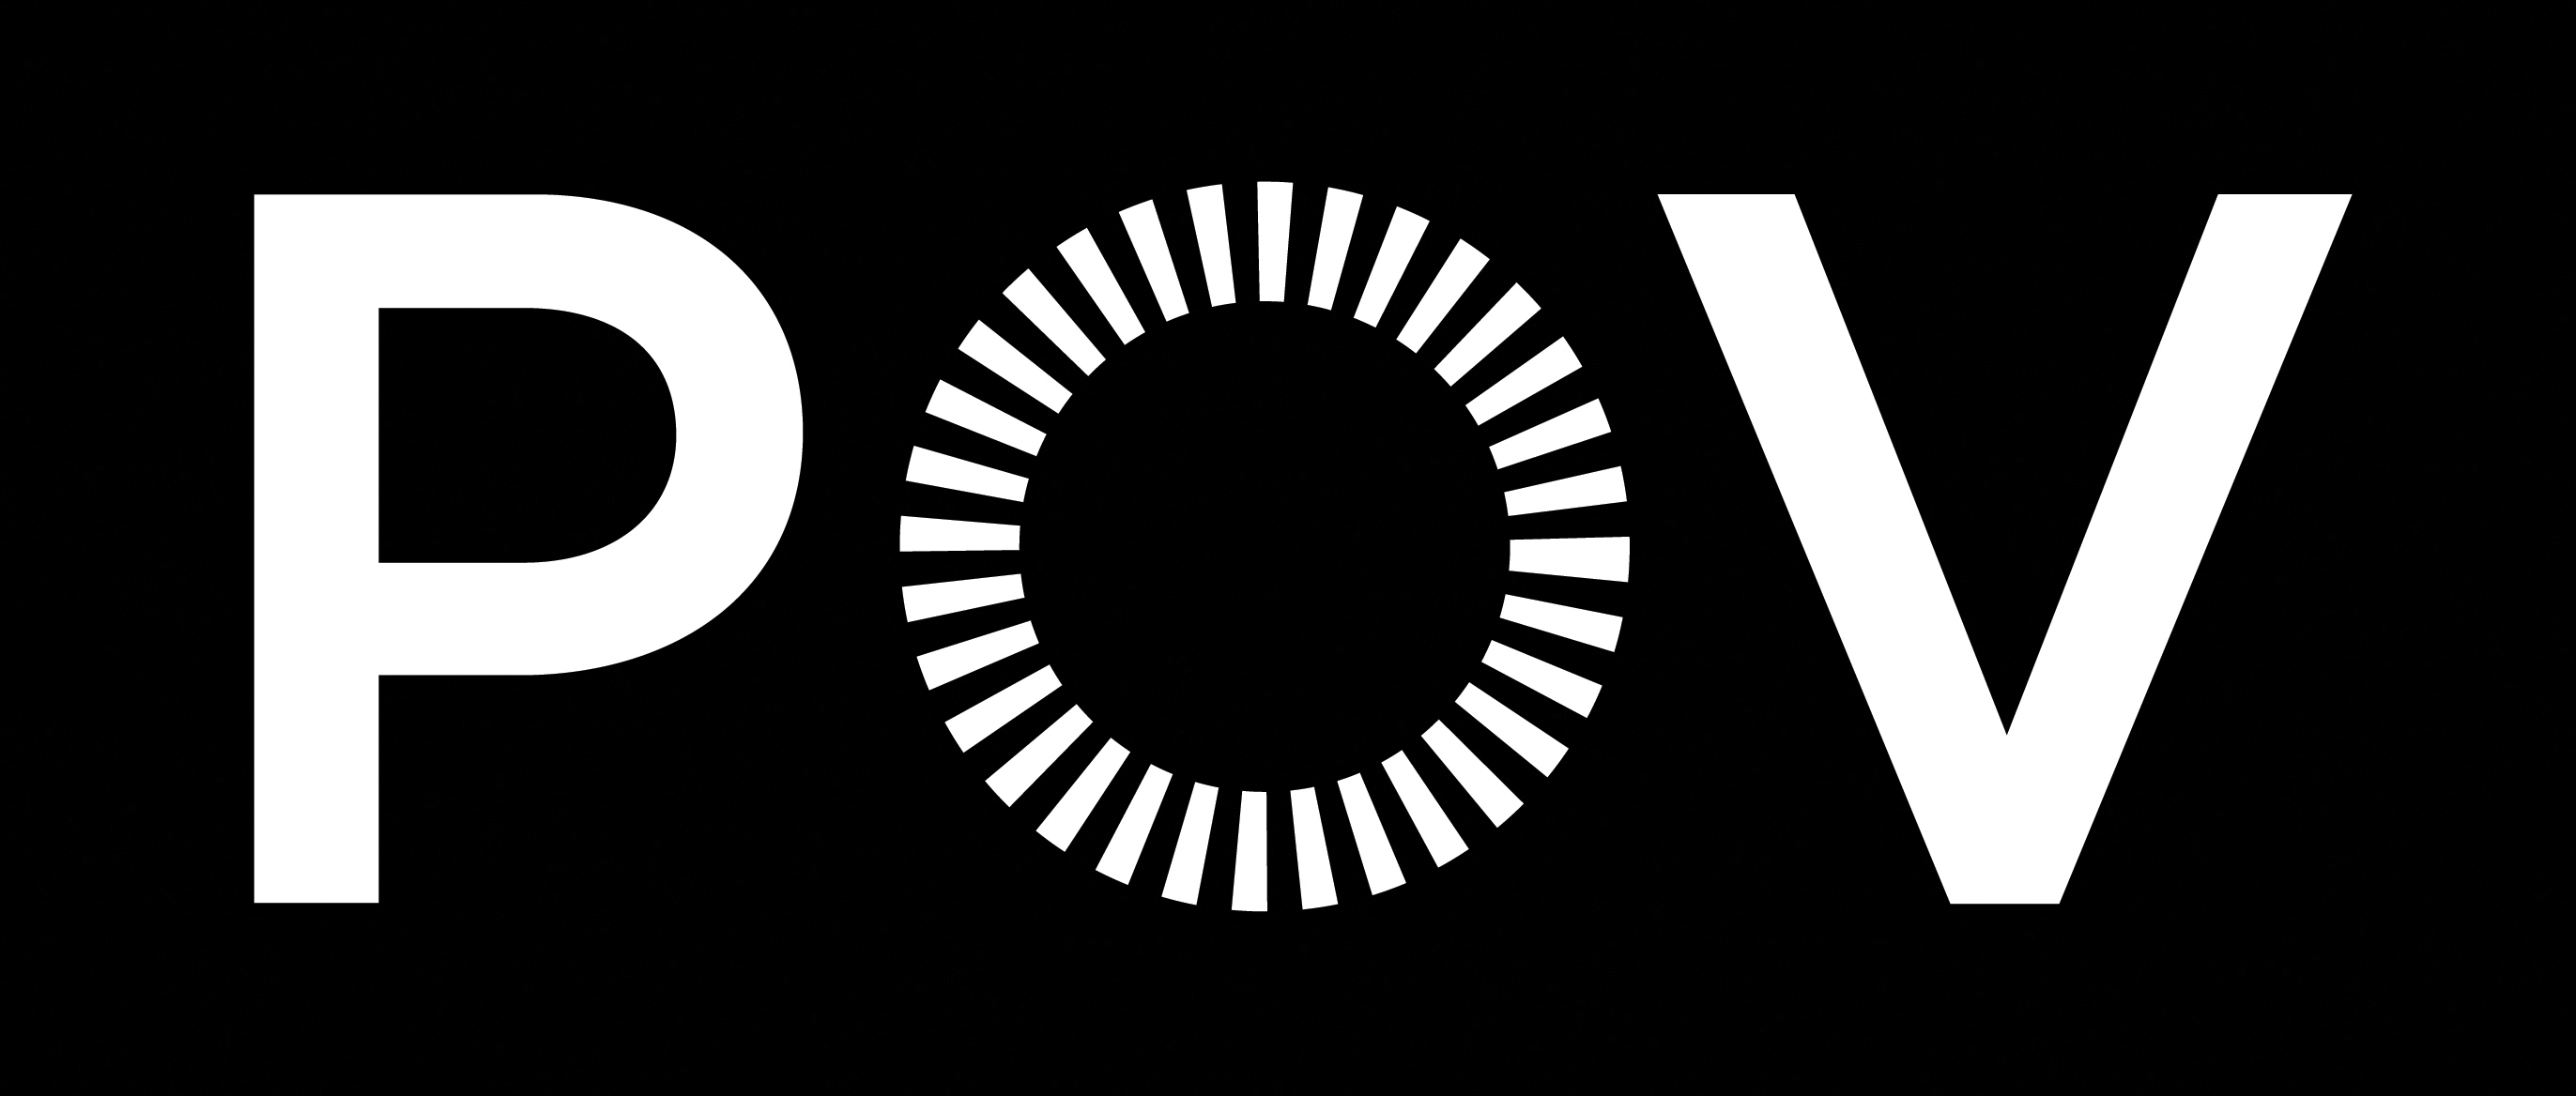 POV Logo - Photo Credit: American Documentary, Inc.